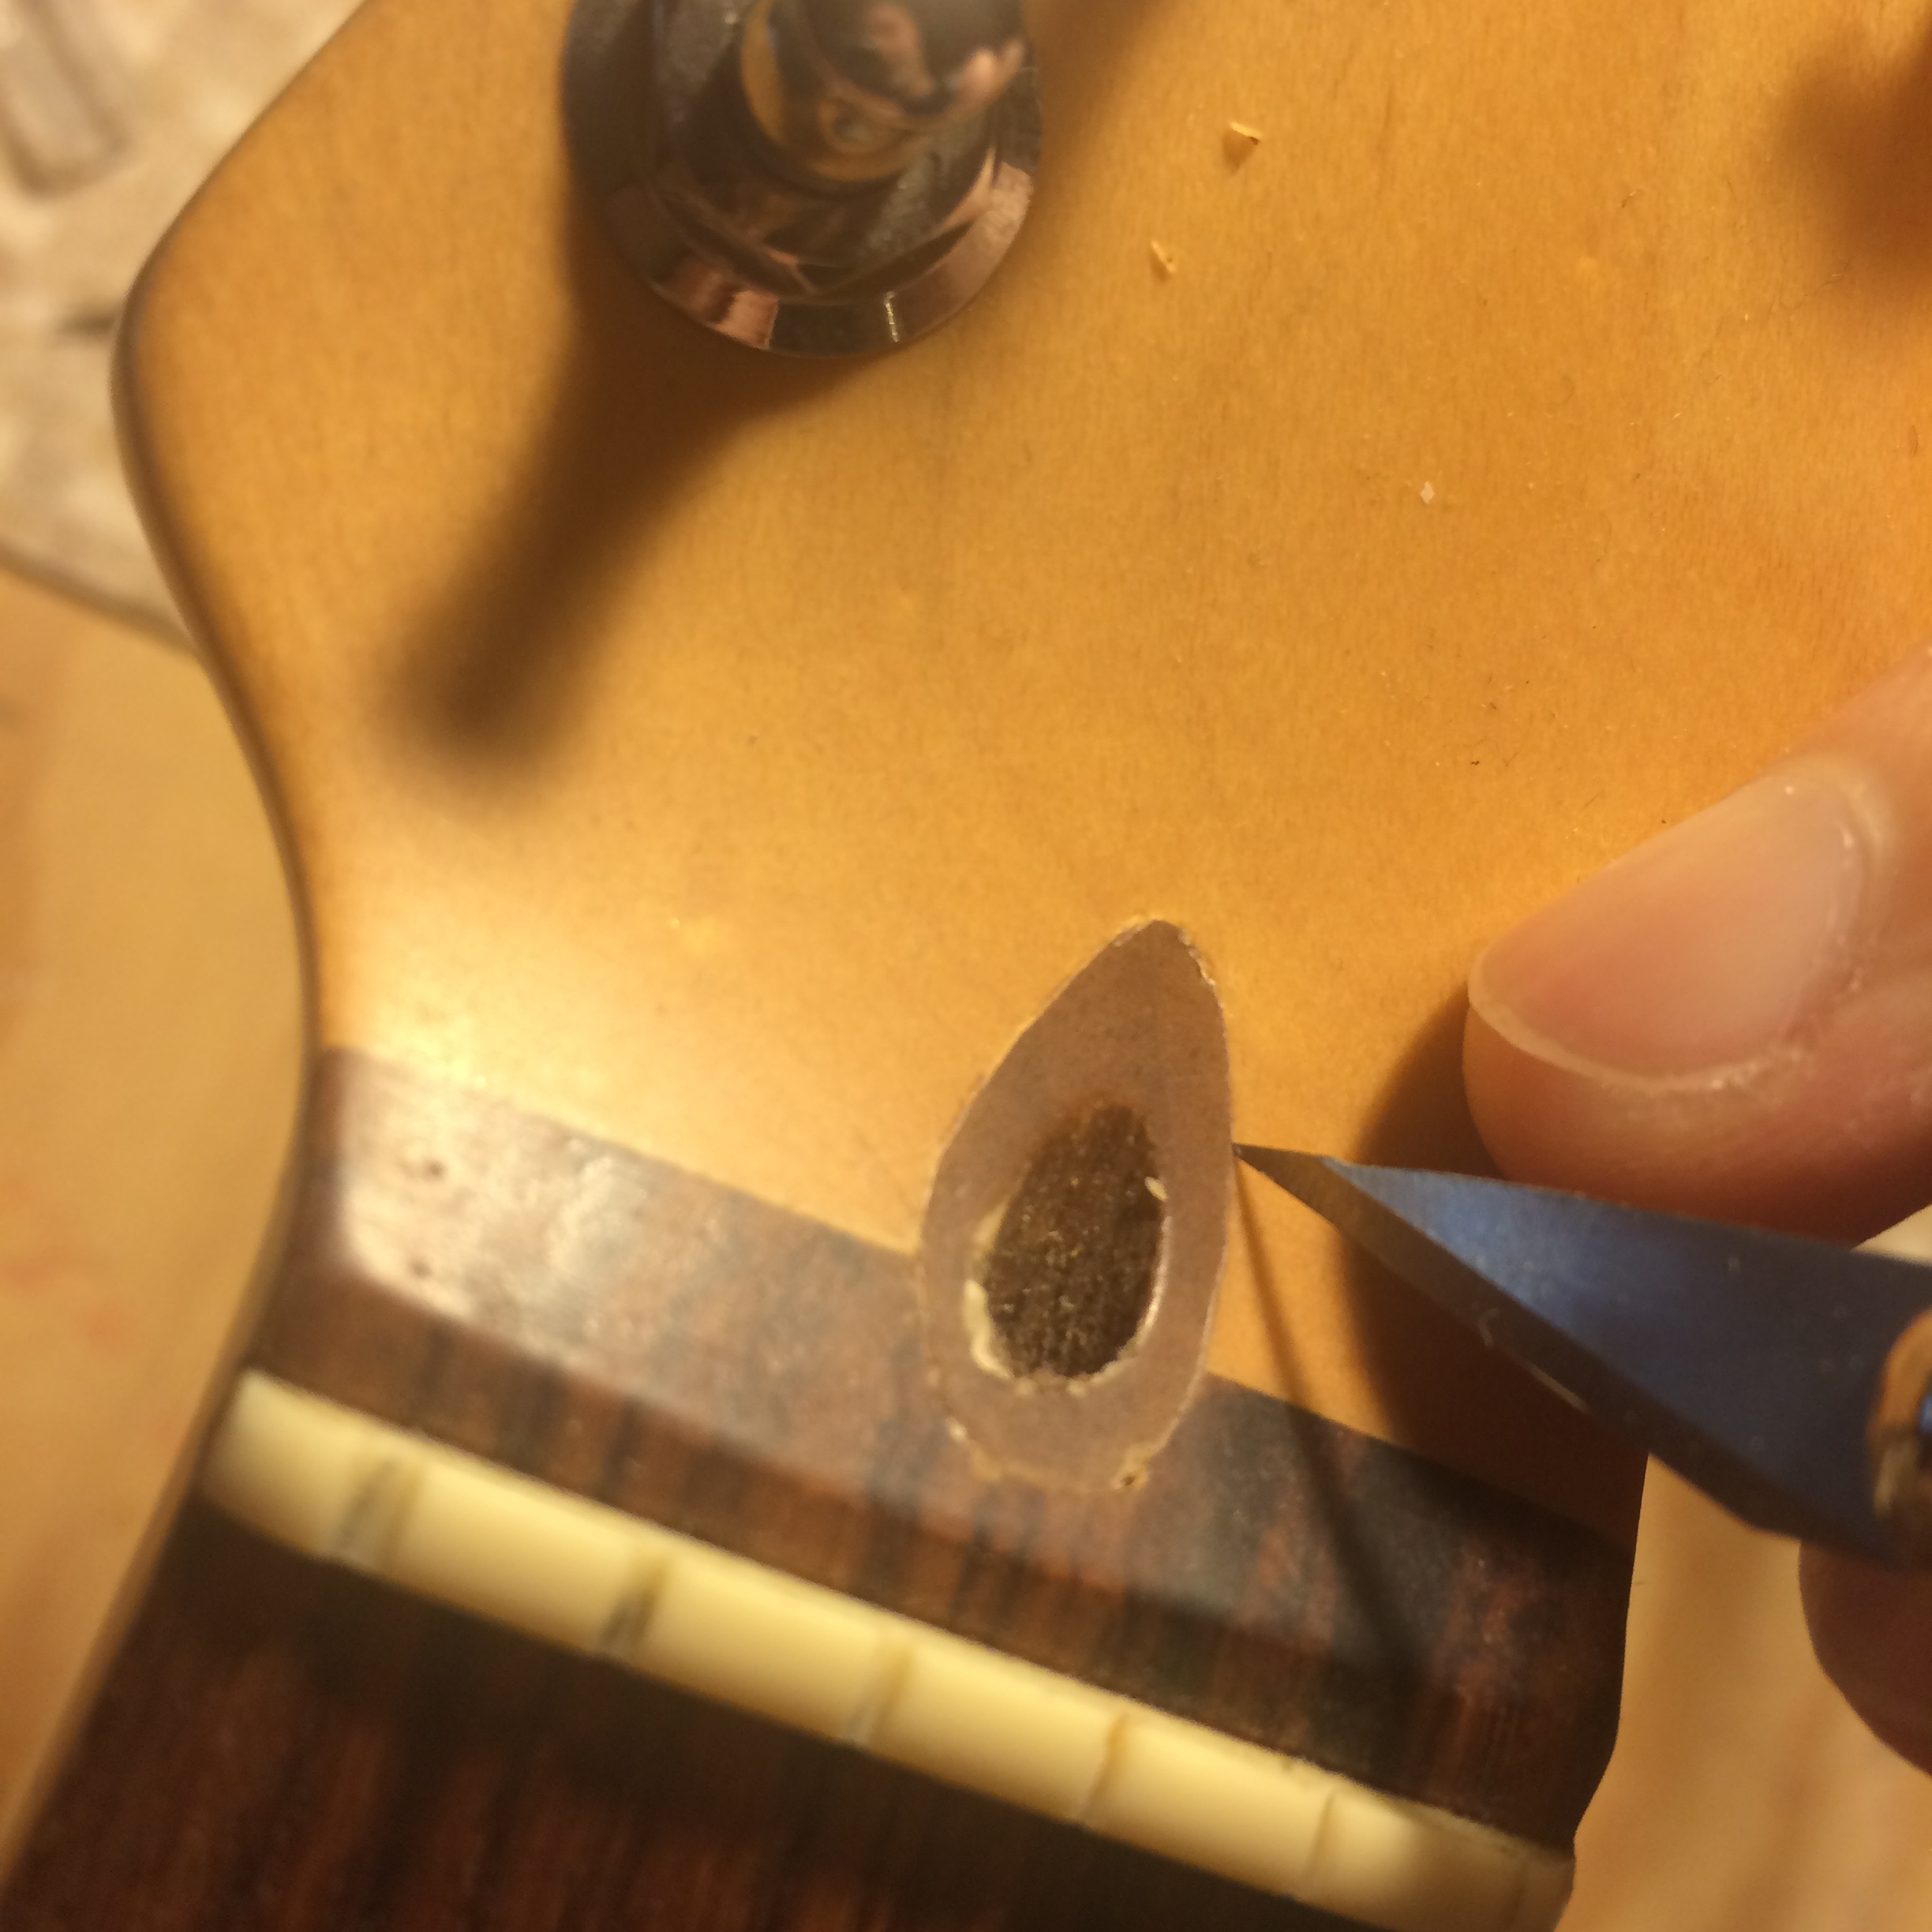 Truss rod wooden plug on Fender guitar. Score around the edge with a sharp knife before removing.